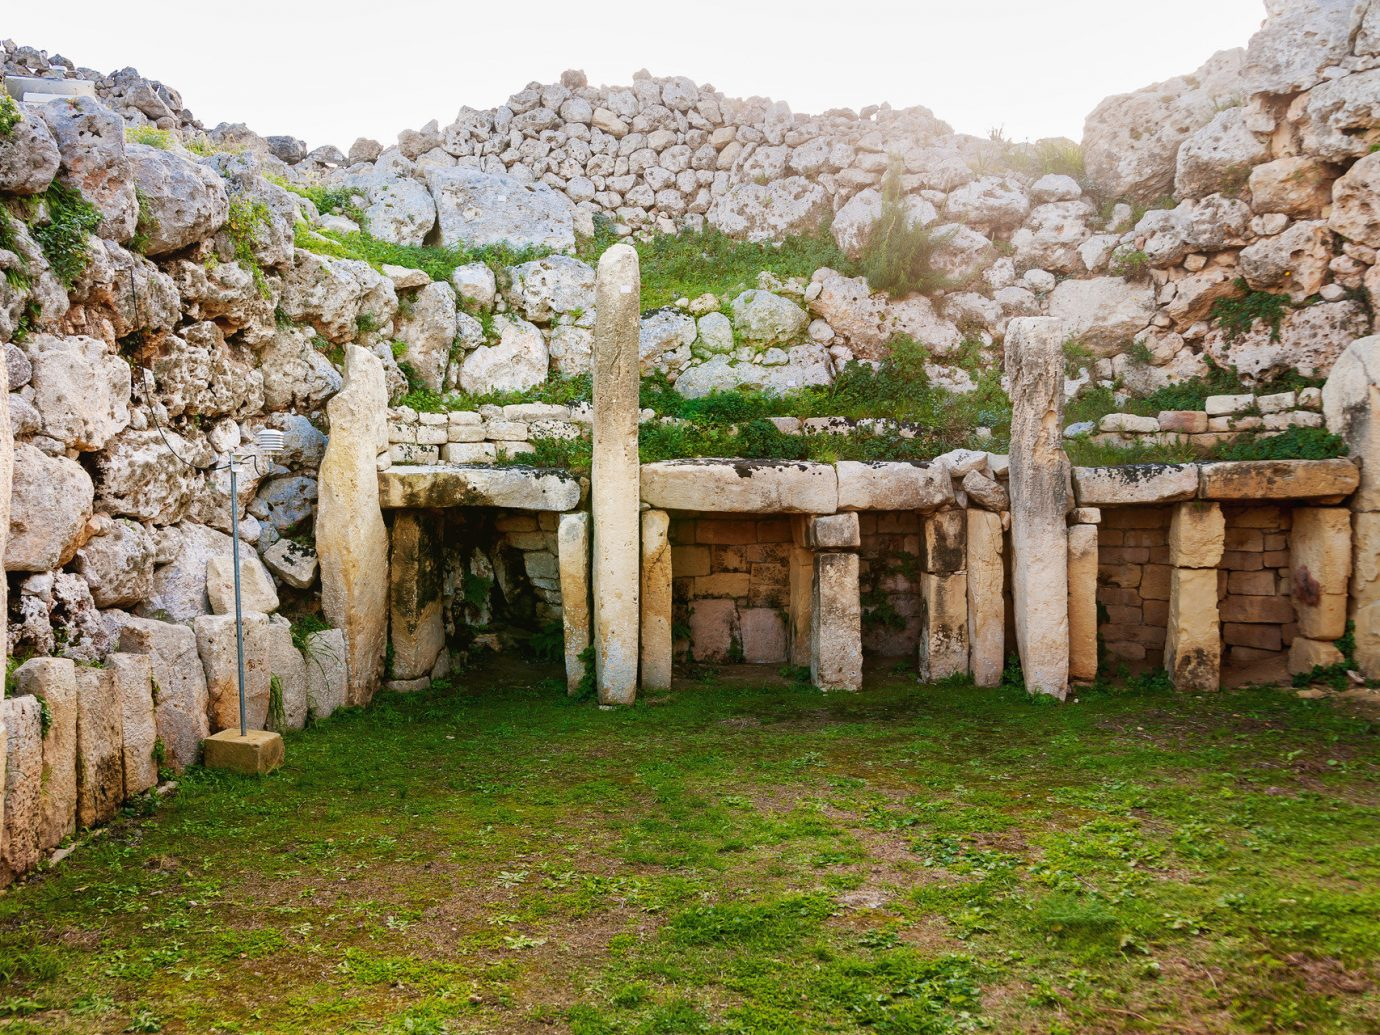 Trip Ideas grass rock outdoor wall Ruins building ancient history stone Village monastery flower temple arch formation place of worship shrine megalith lush